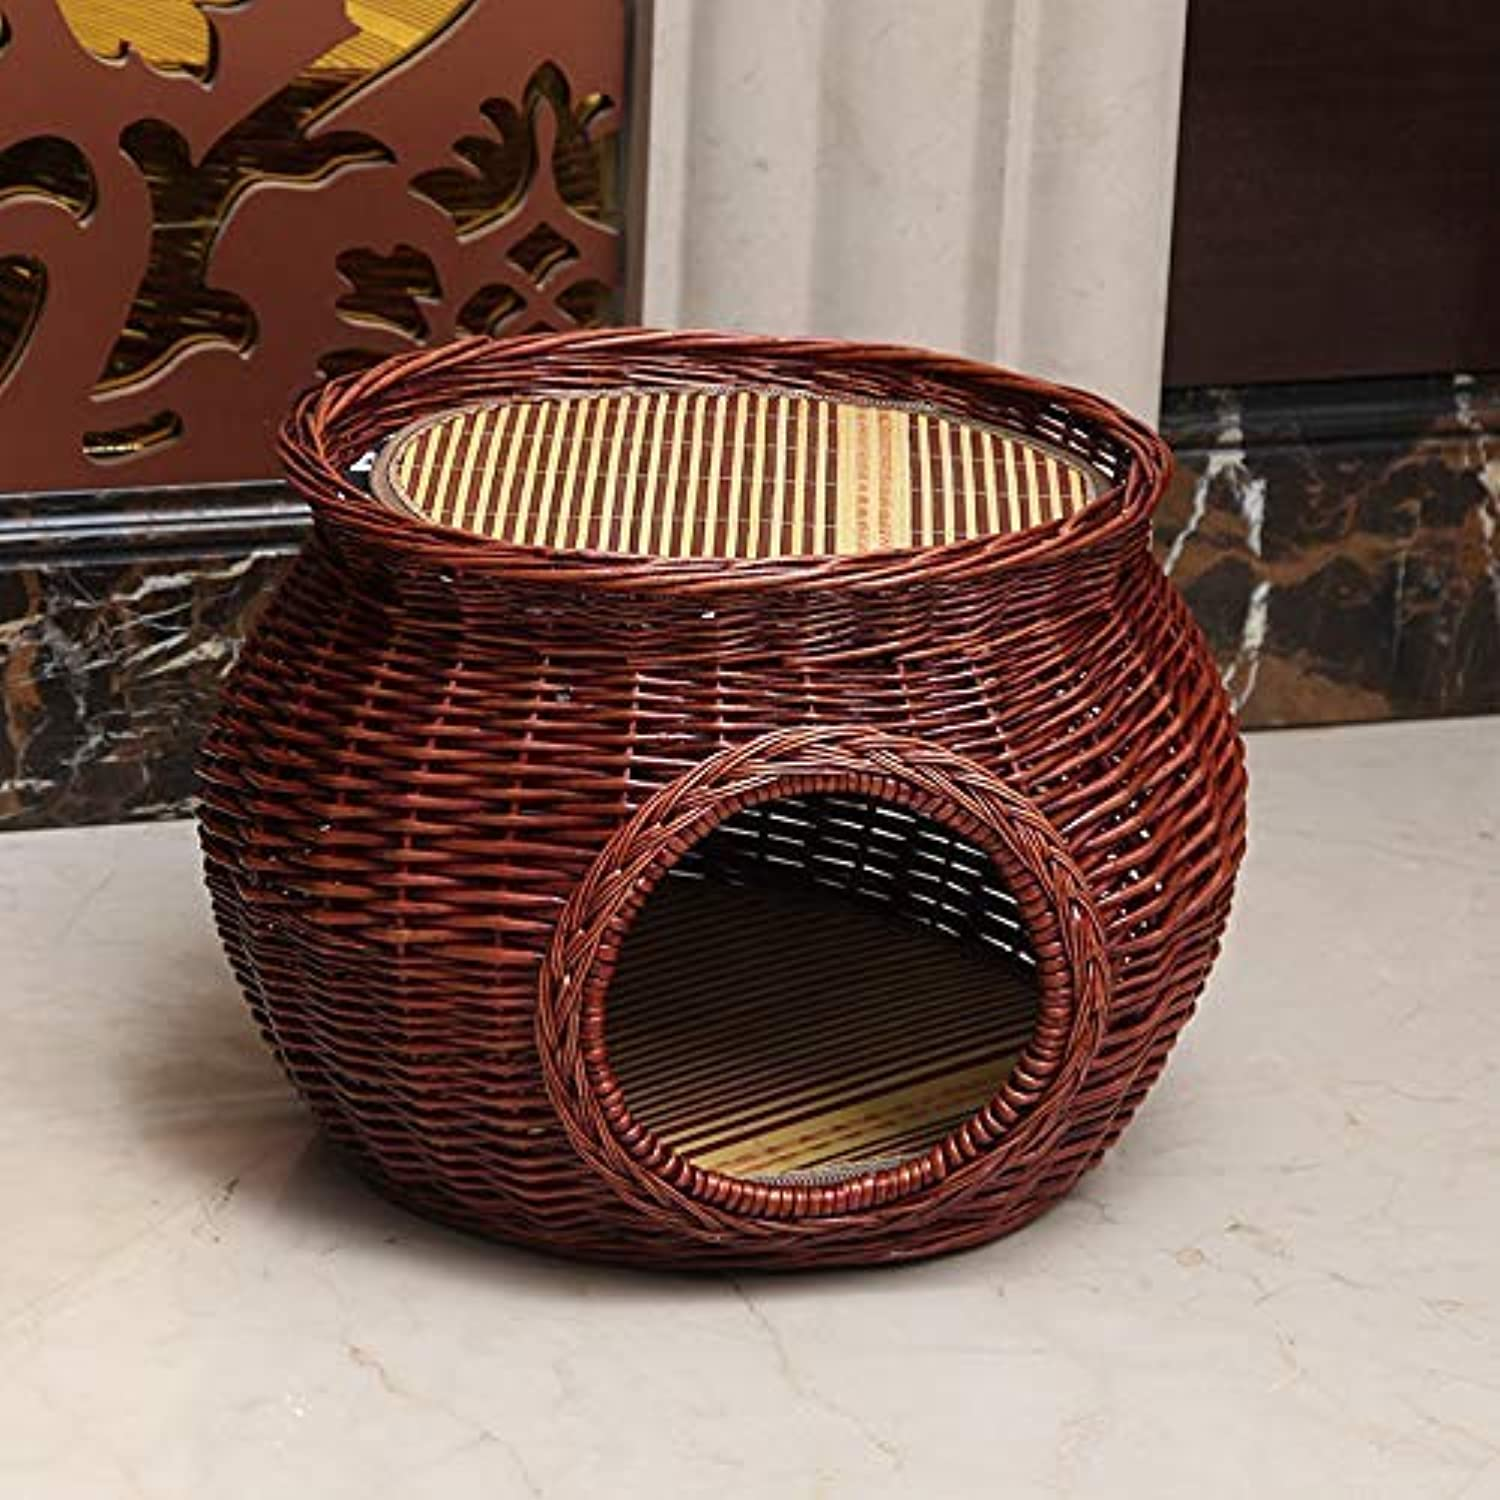 Handmade Rattan Wicker Basket Cat Bed Cave Dog House Pet Home Rattan Furniture Kennel Two Level Cat Houses Cushion RedBrown color(Size L